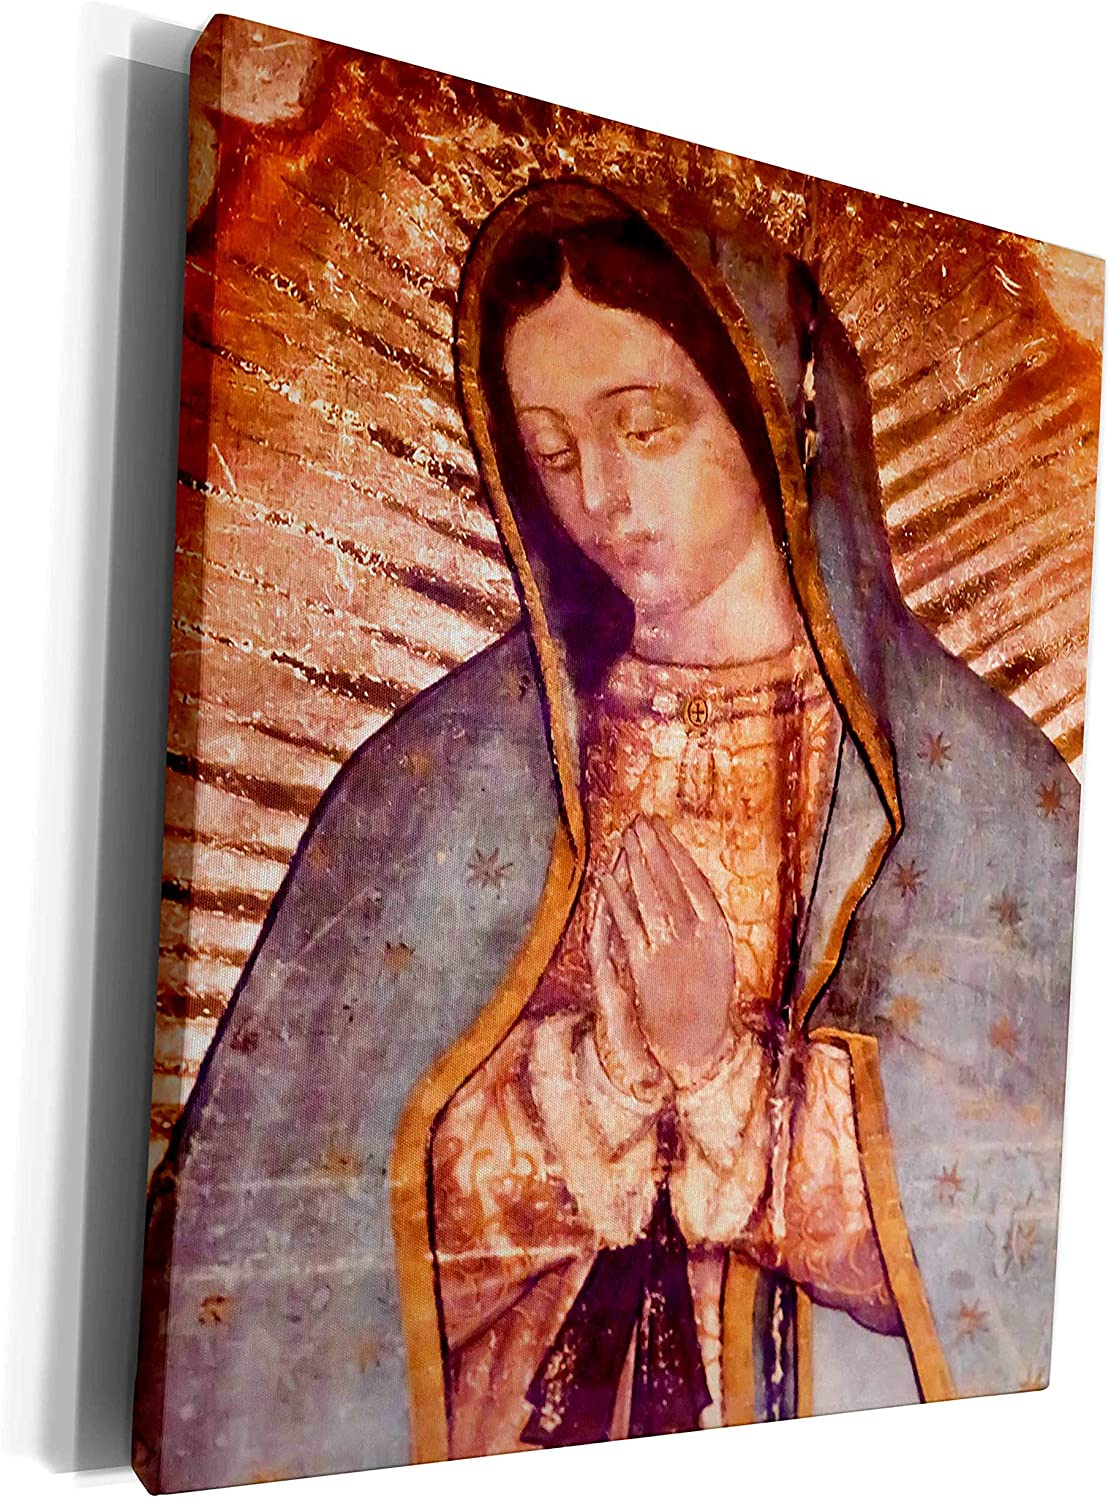 3dRose cw_258540_1 Virgin Mary Painting, New Shrine of The Guadalupe, Mexico-Museum Grave Canvas, 16 by 20-inch, Multicolor